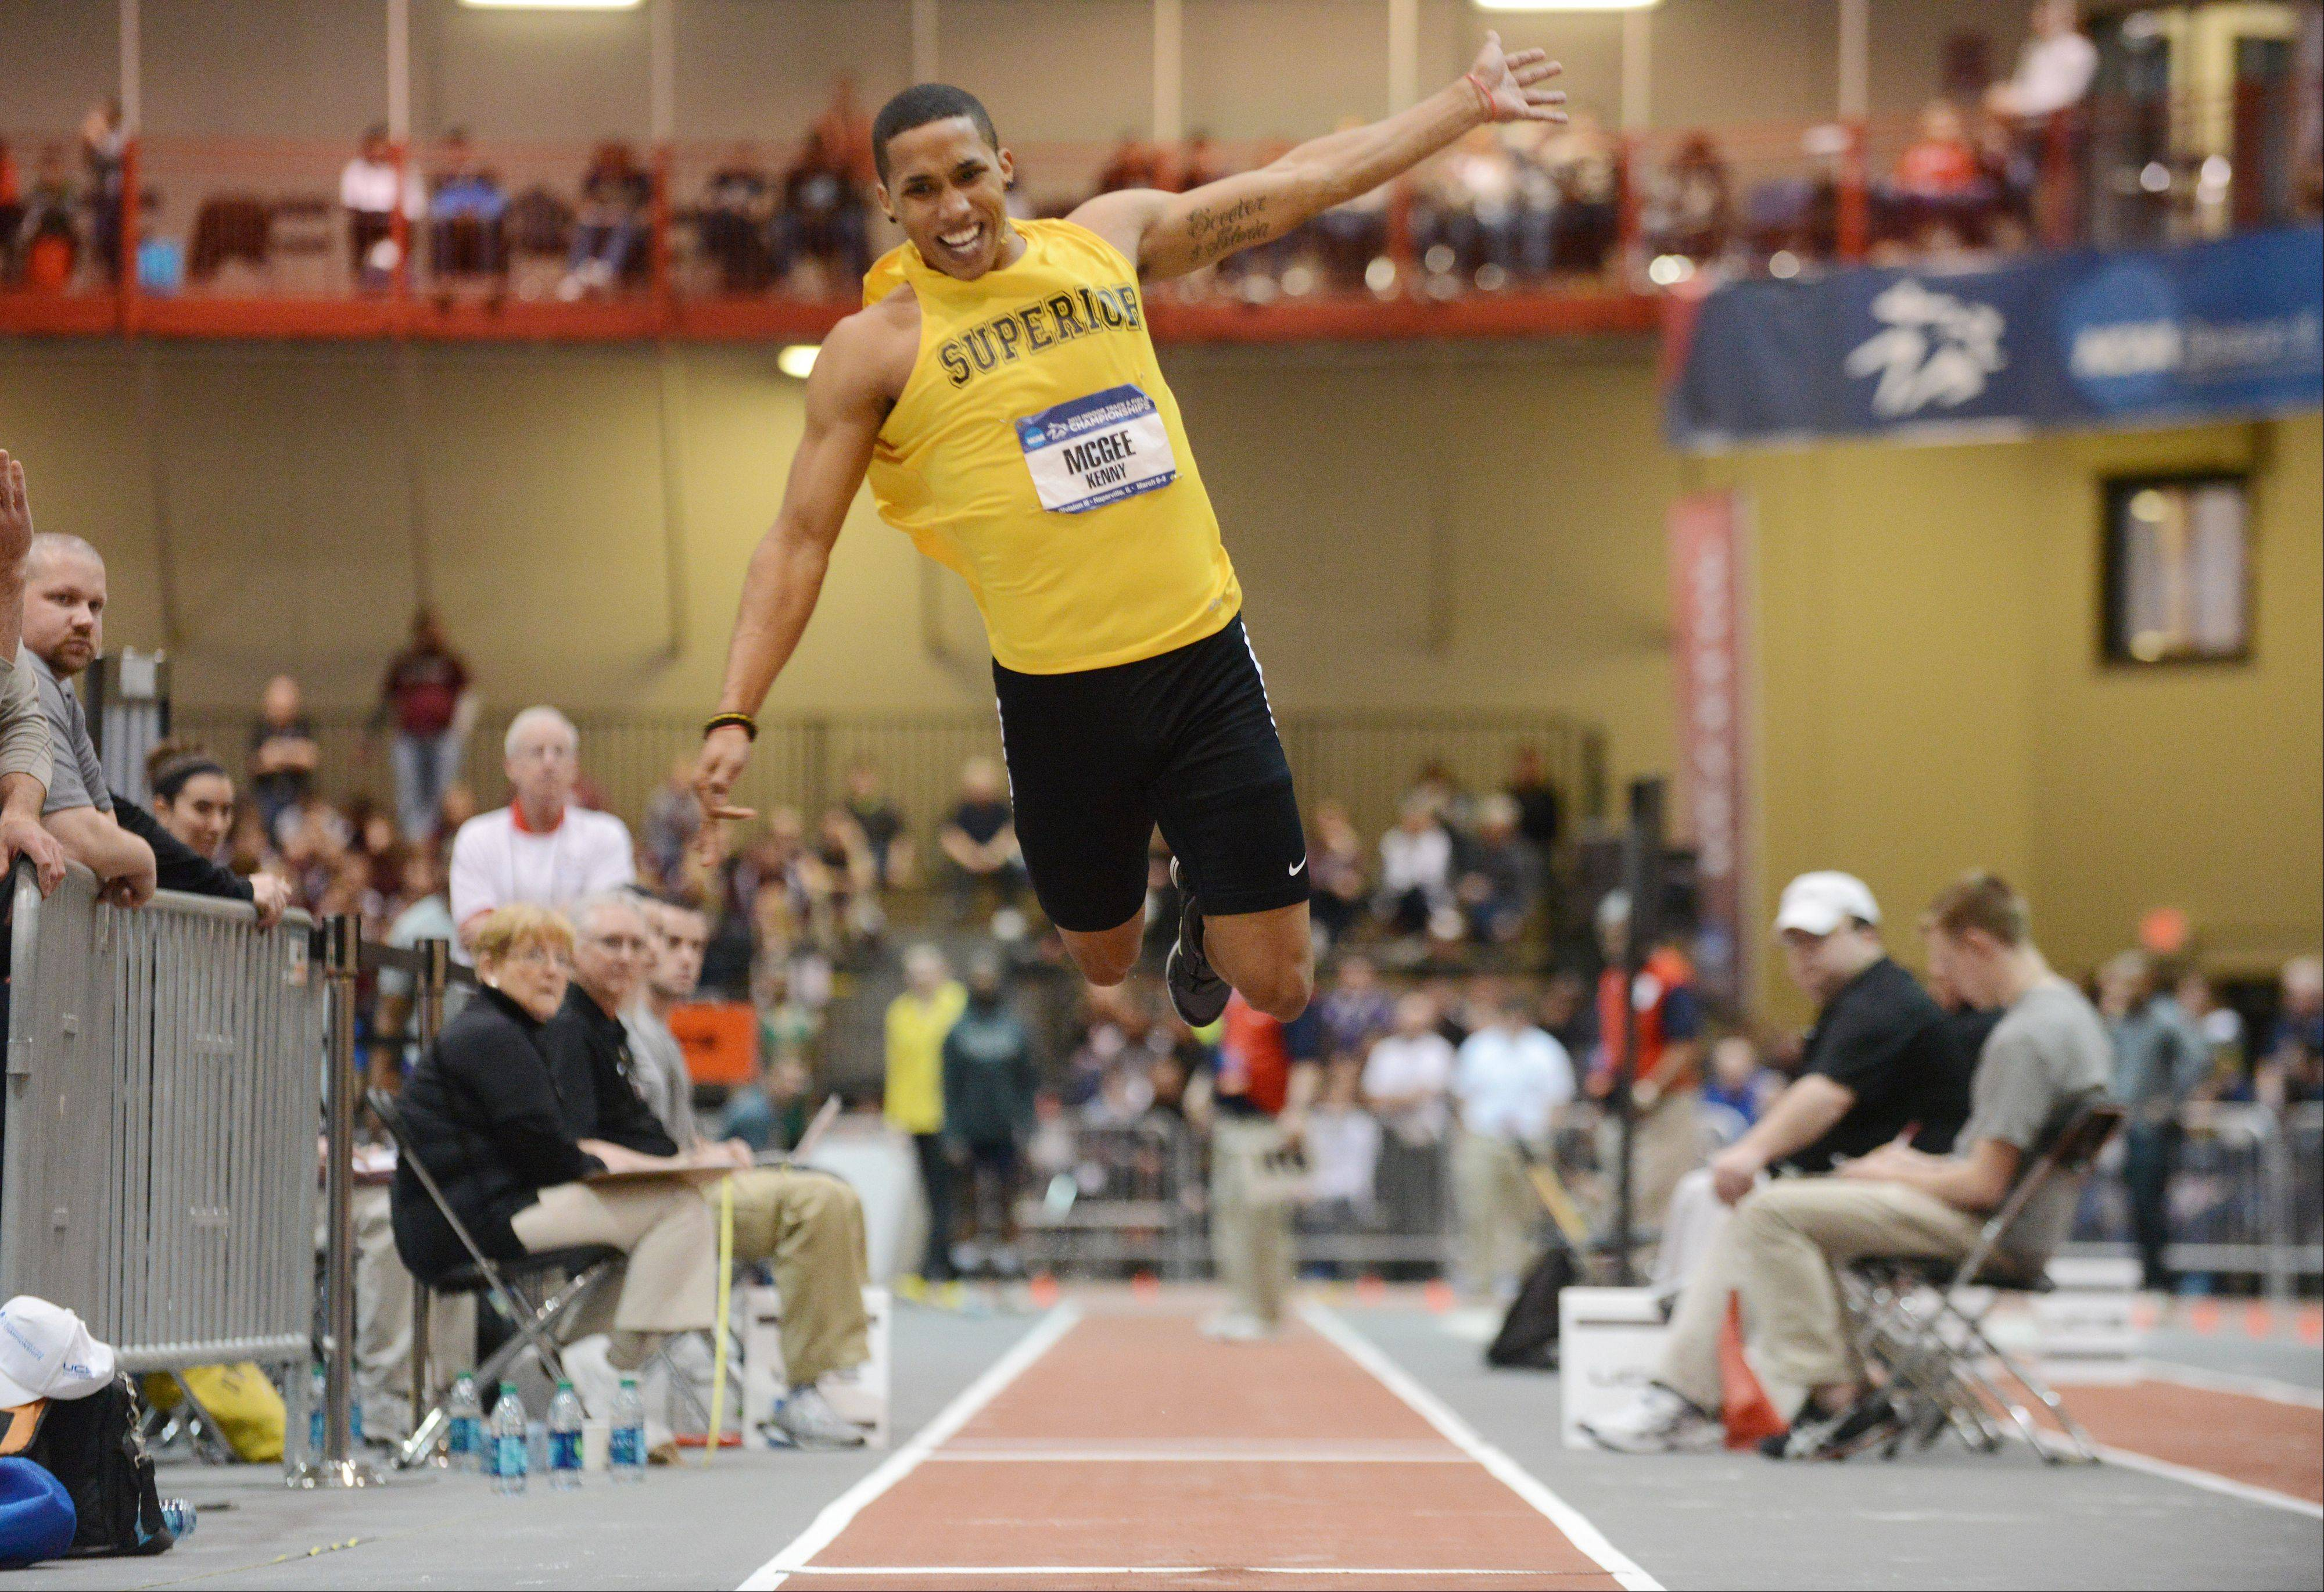 Kenny McGee of the University of Wisconsin-Superior takes flight during the triple jump Saturday at the NCAA Division III Indoor Track and Field Championships at North Central College.